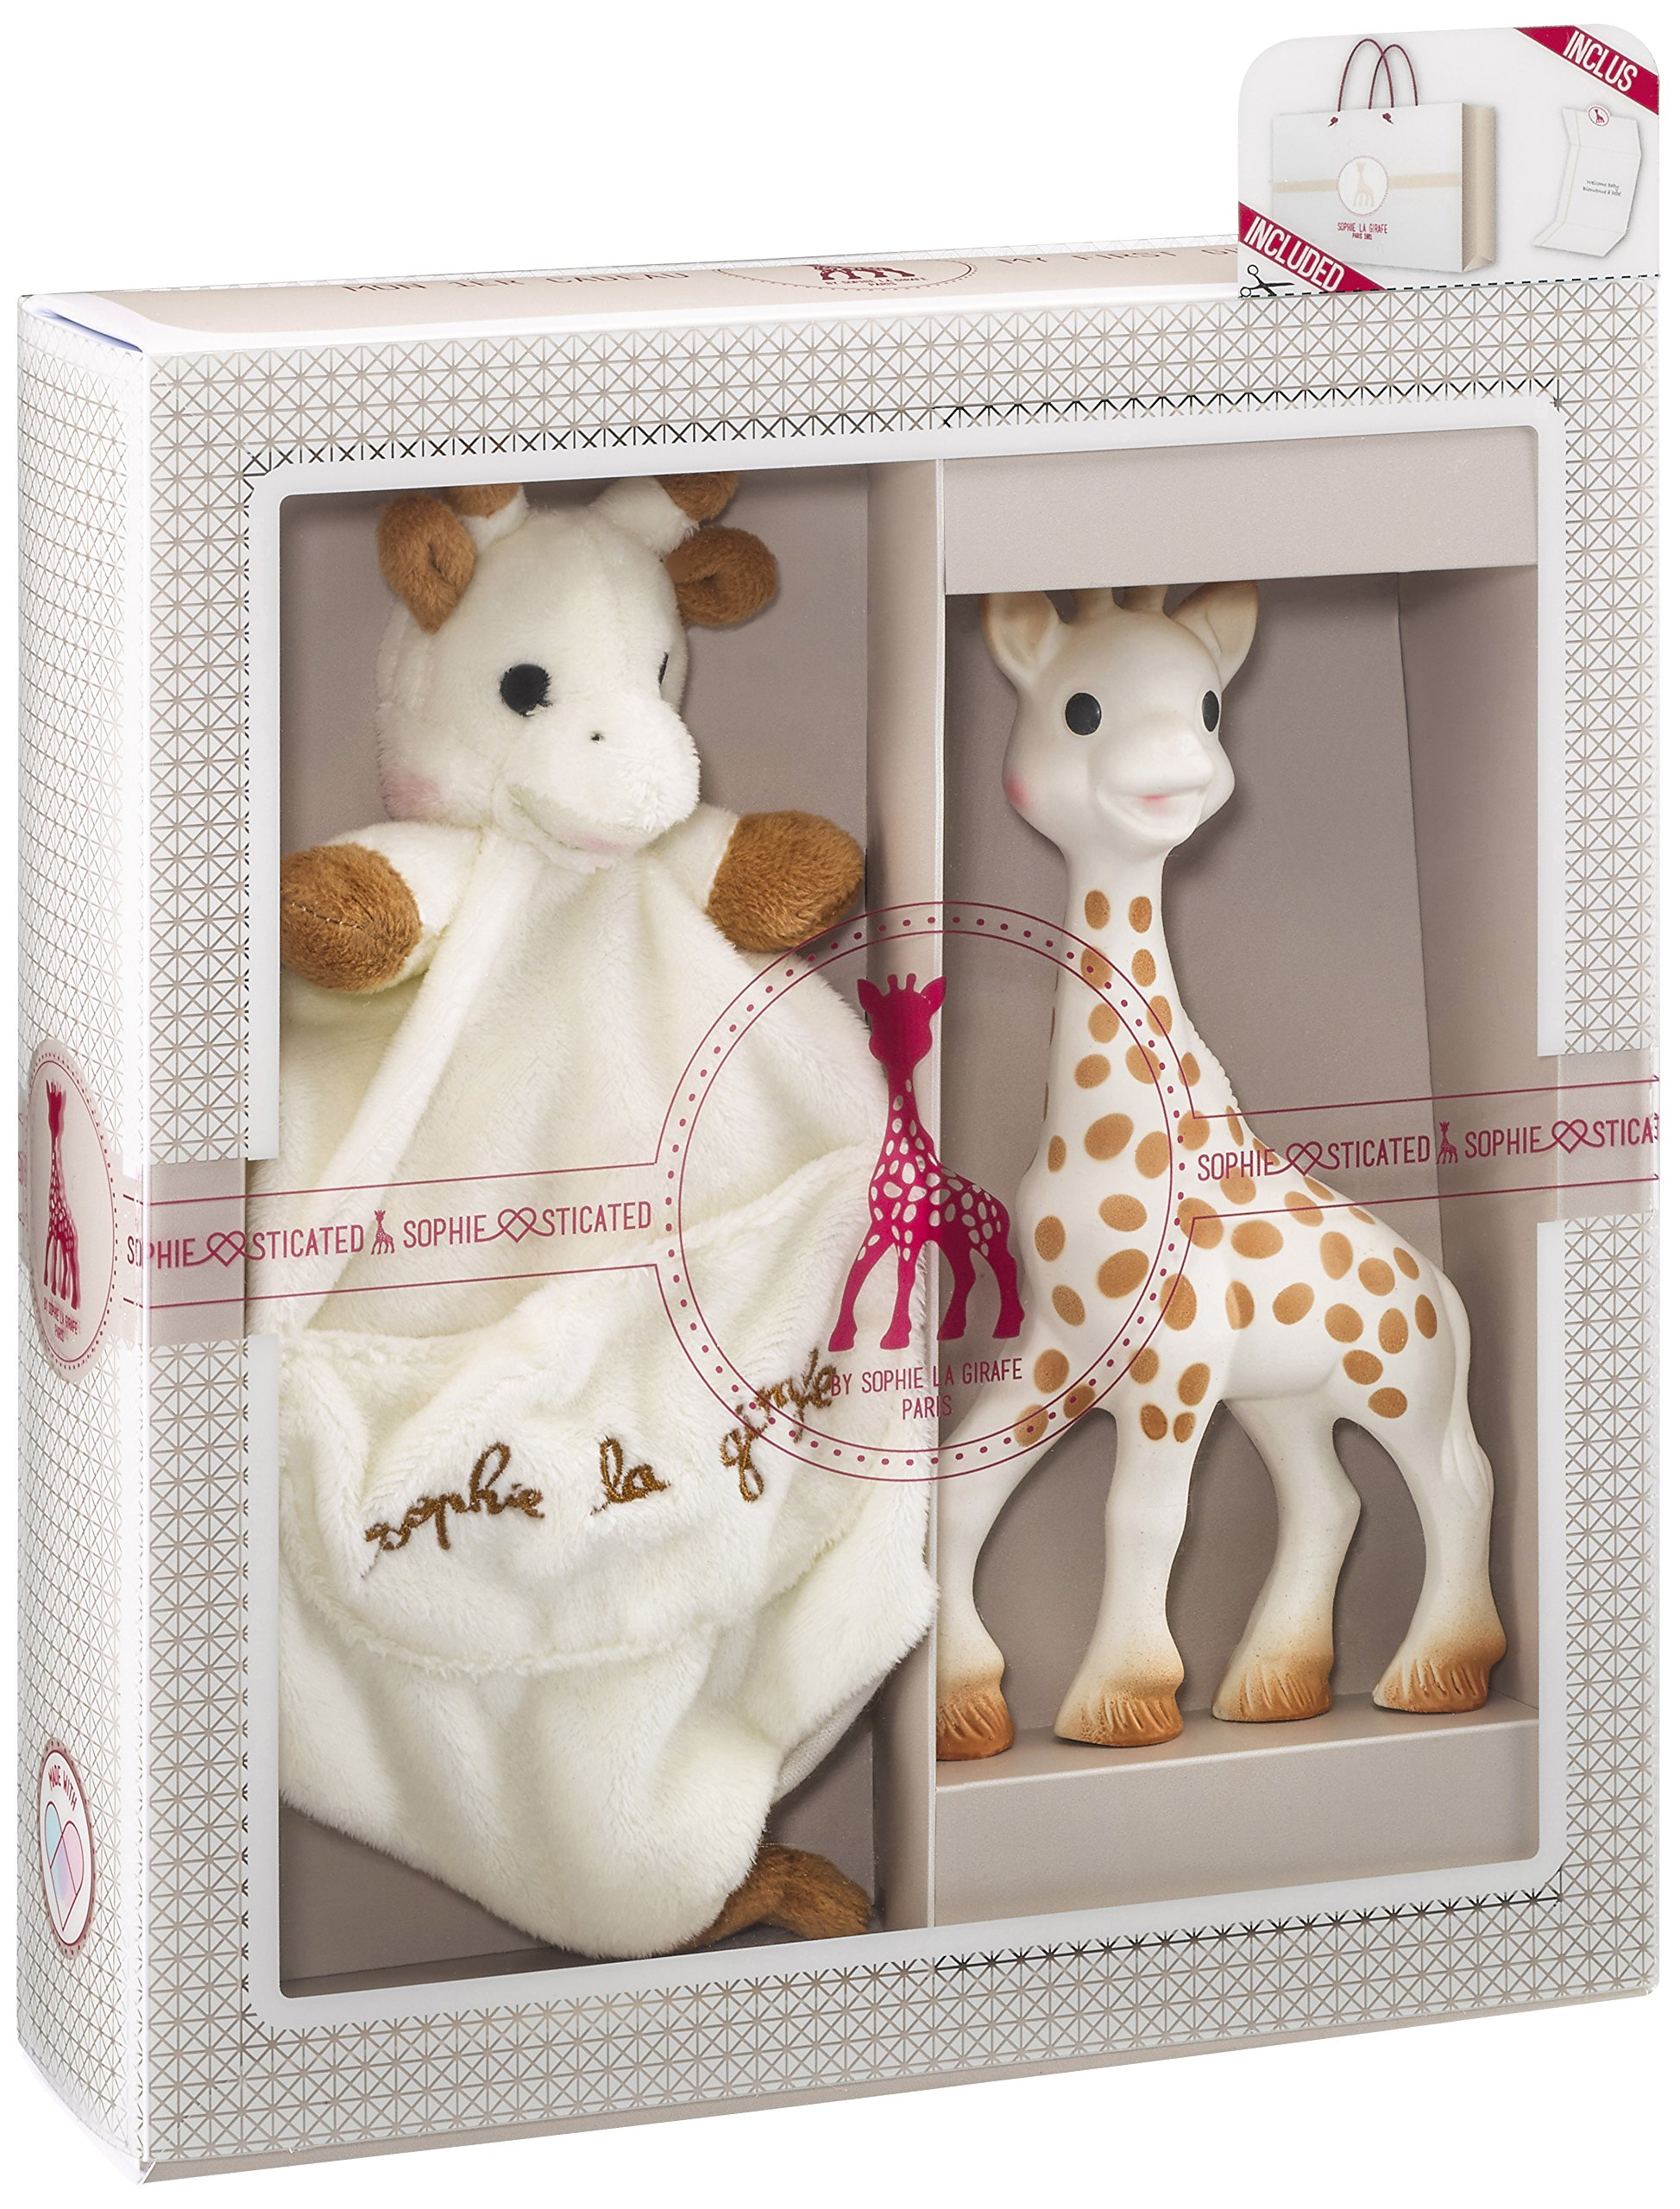 Vulli Sophie la Girafe Sophiesticated Tenderness Creation Birth Set Medium #1- Plush Lovie & Toy by Sophie La Girafe